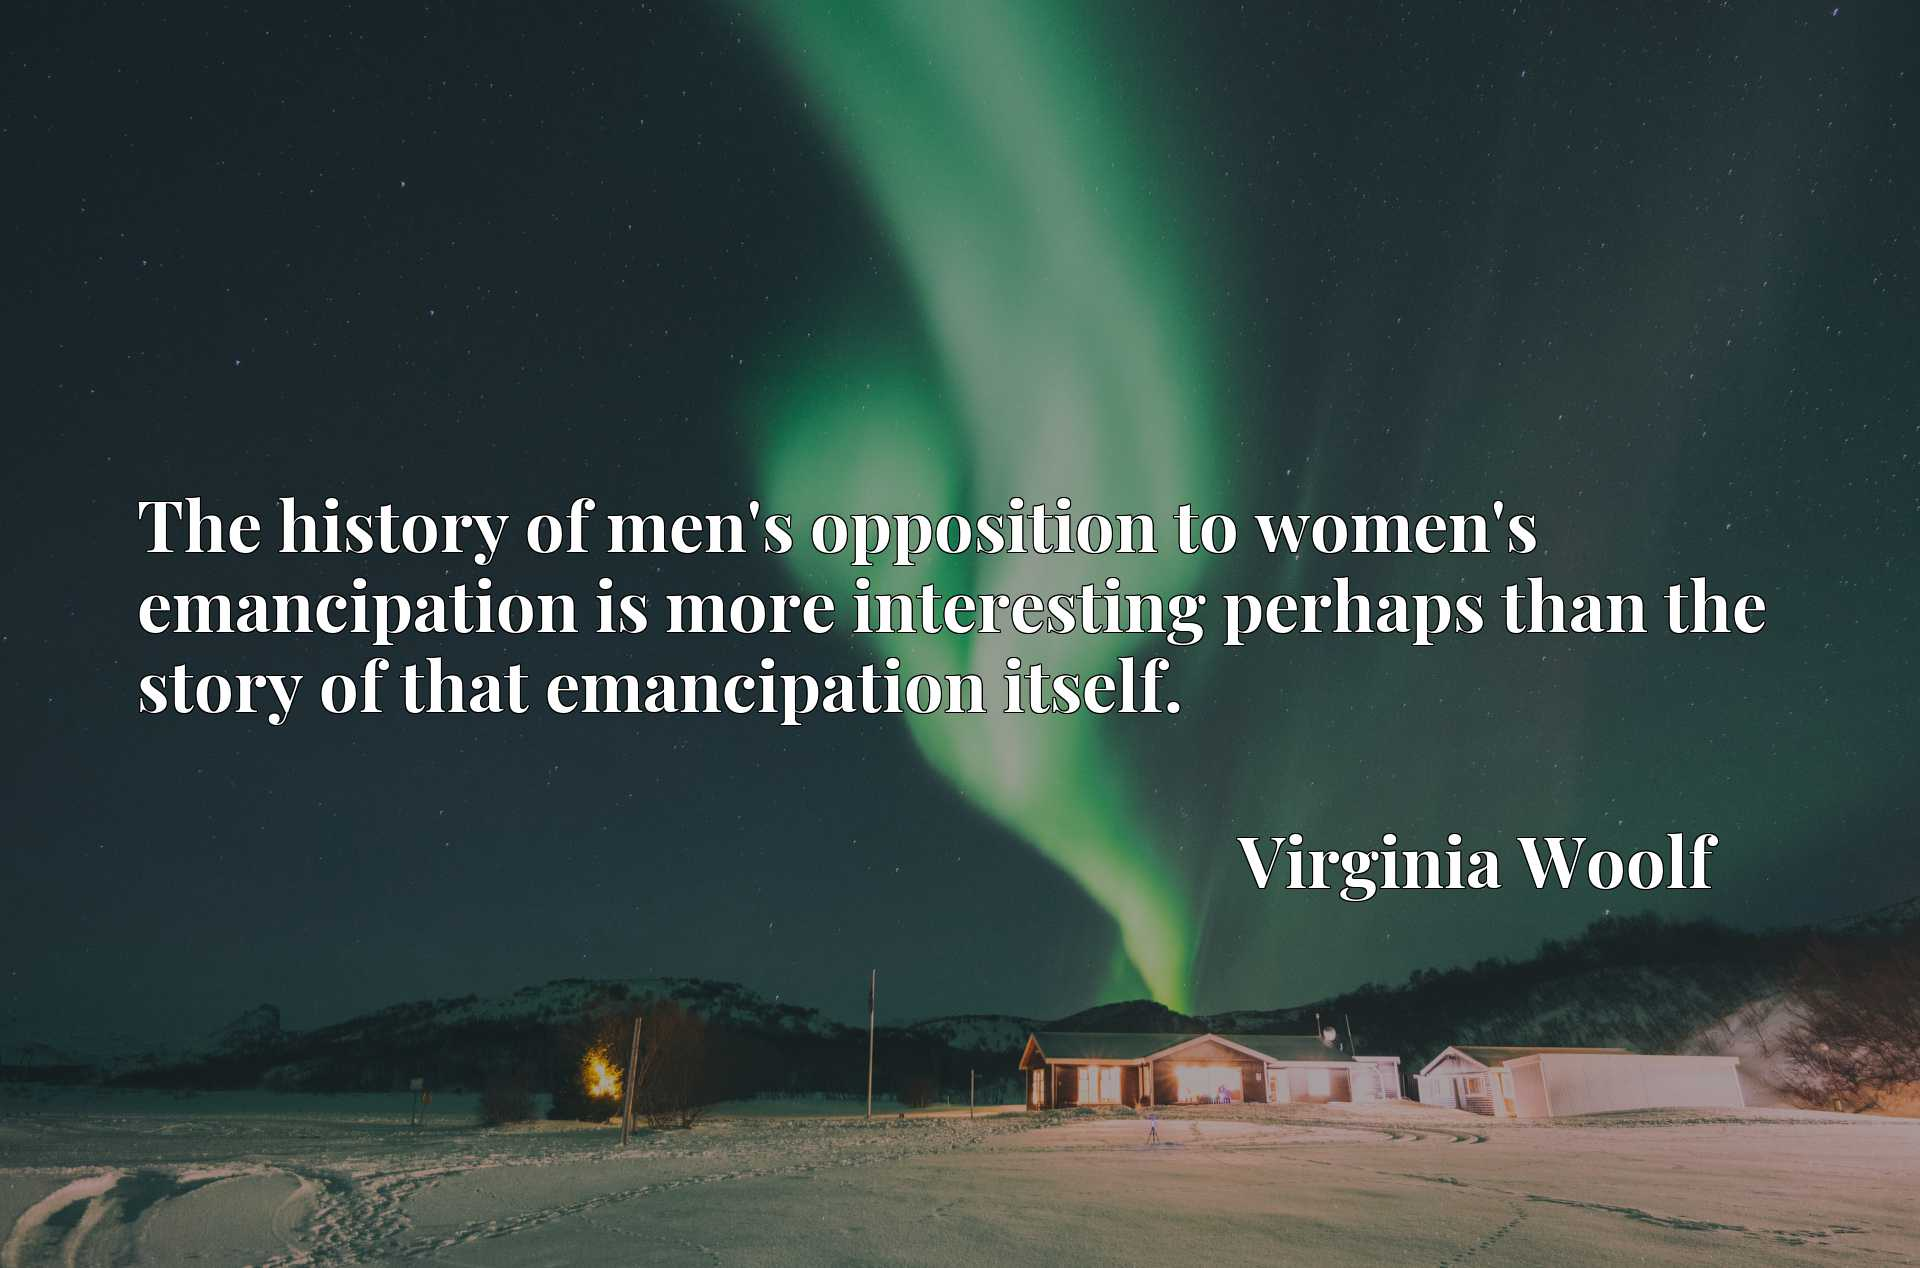 The history of men's opposition to women's emancipation is more interesting perhaps than the story of that emancipation itself.